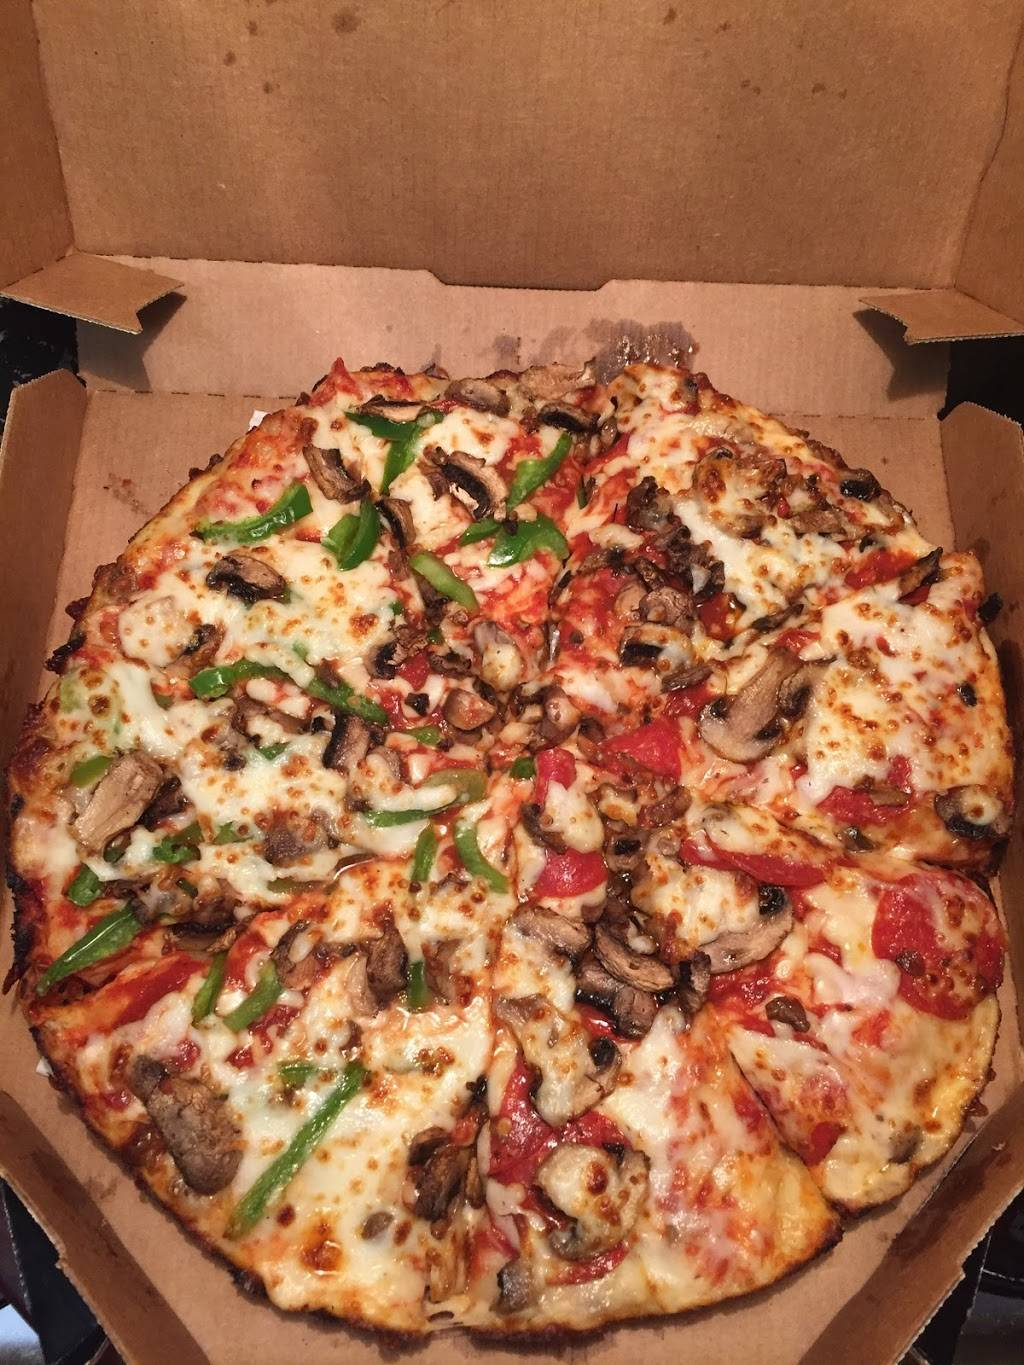 Dominos Pizza | meal delivery | 401 Grand Ave, Des Moines, IA 50309, USA | 5152883030 OR +1 515-288-3030